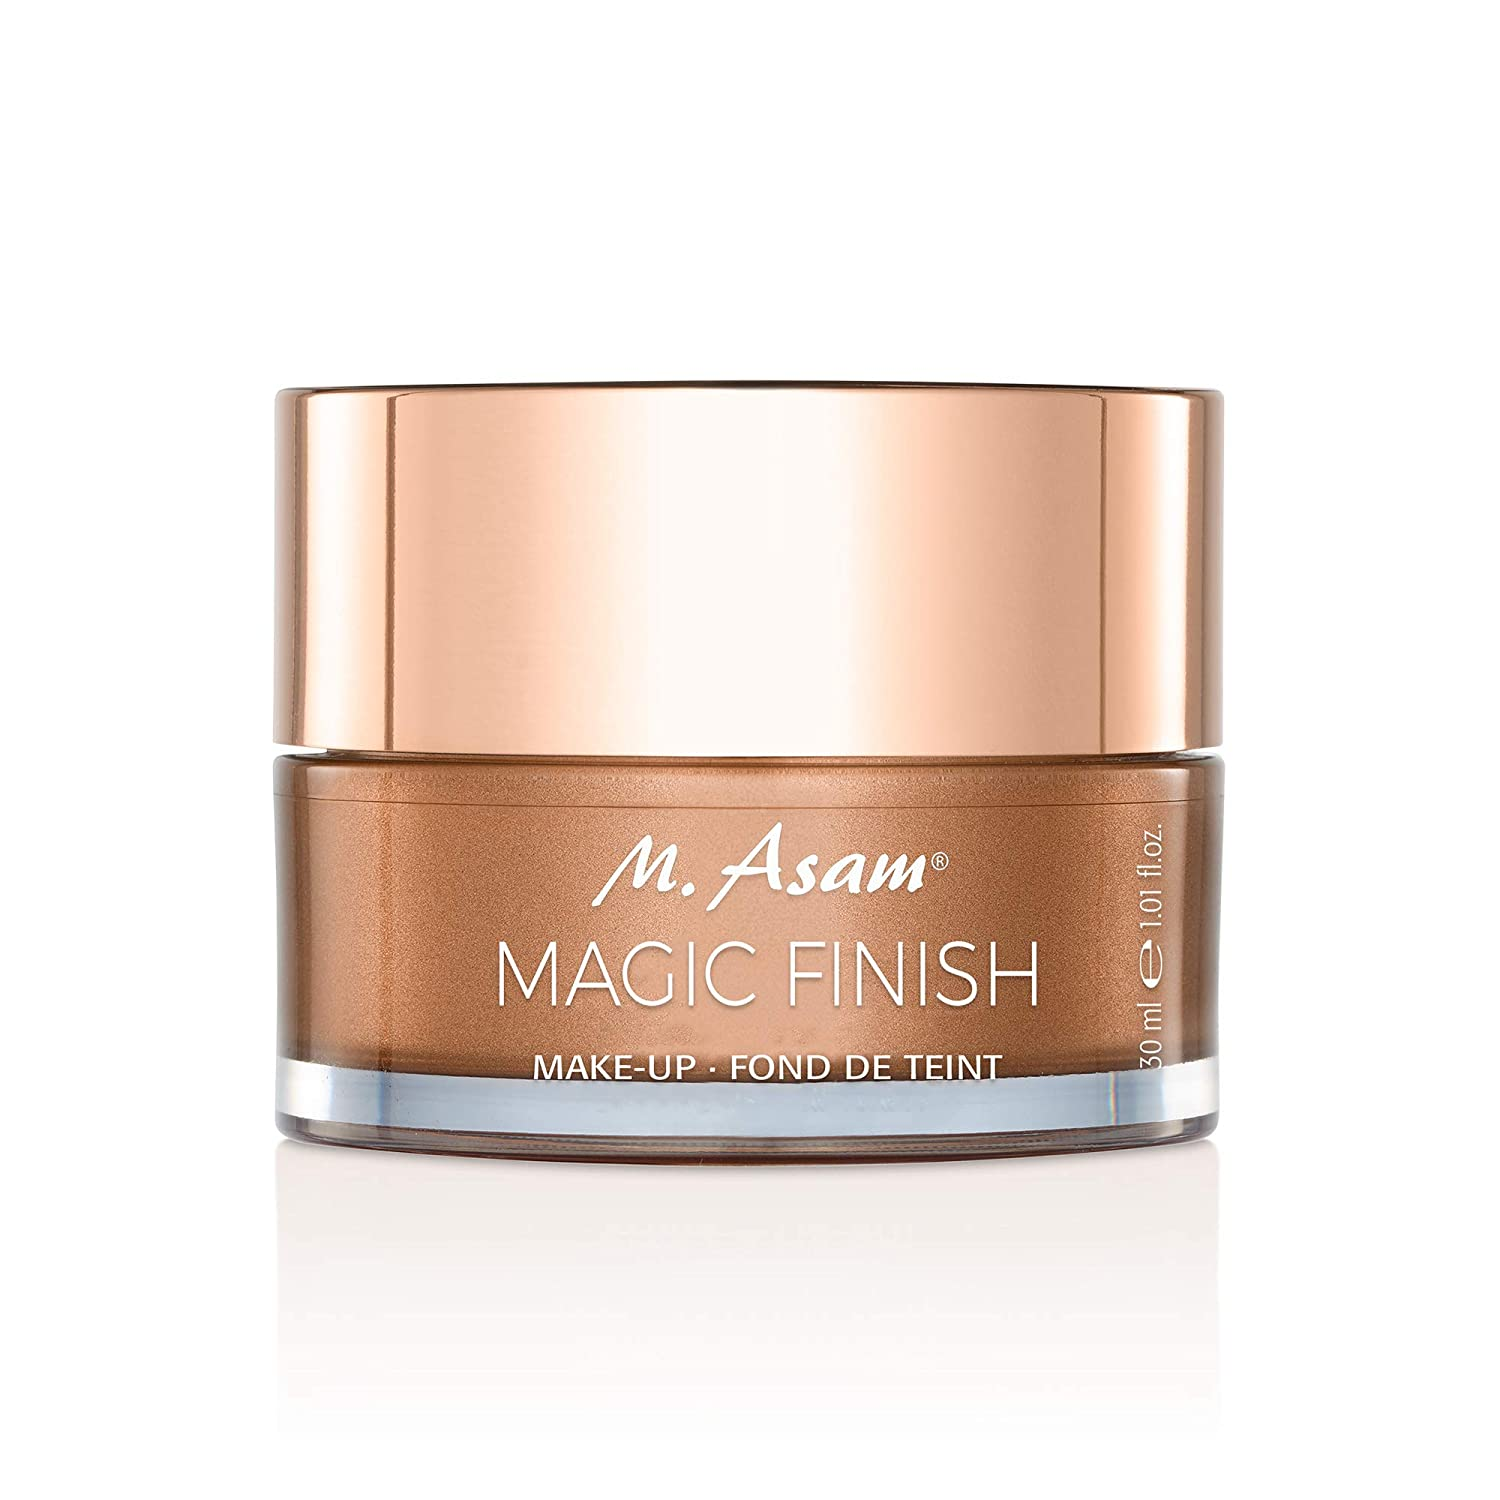 M. Asam, Magic Finish, Lightweight, Wrinkle-Filling Makeup Mousse, 4-In-1, Primer, Concealer, Foundation and Powder - 1.01 Ounce (30 ML)